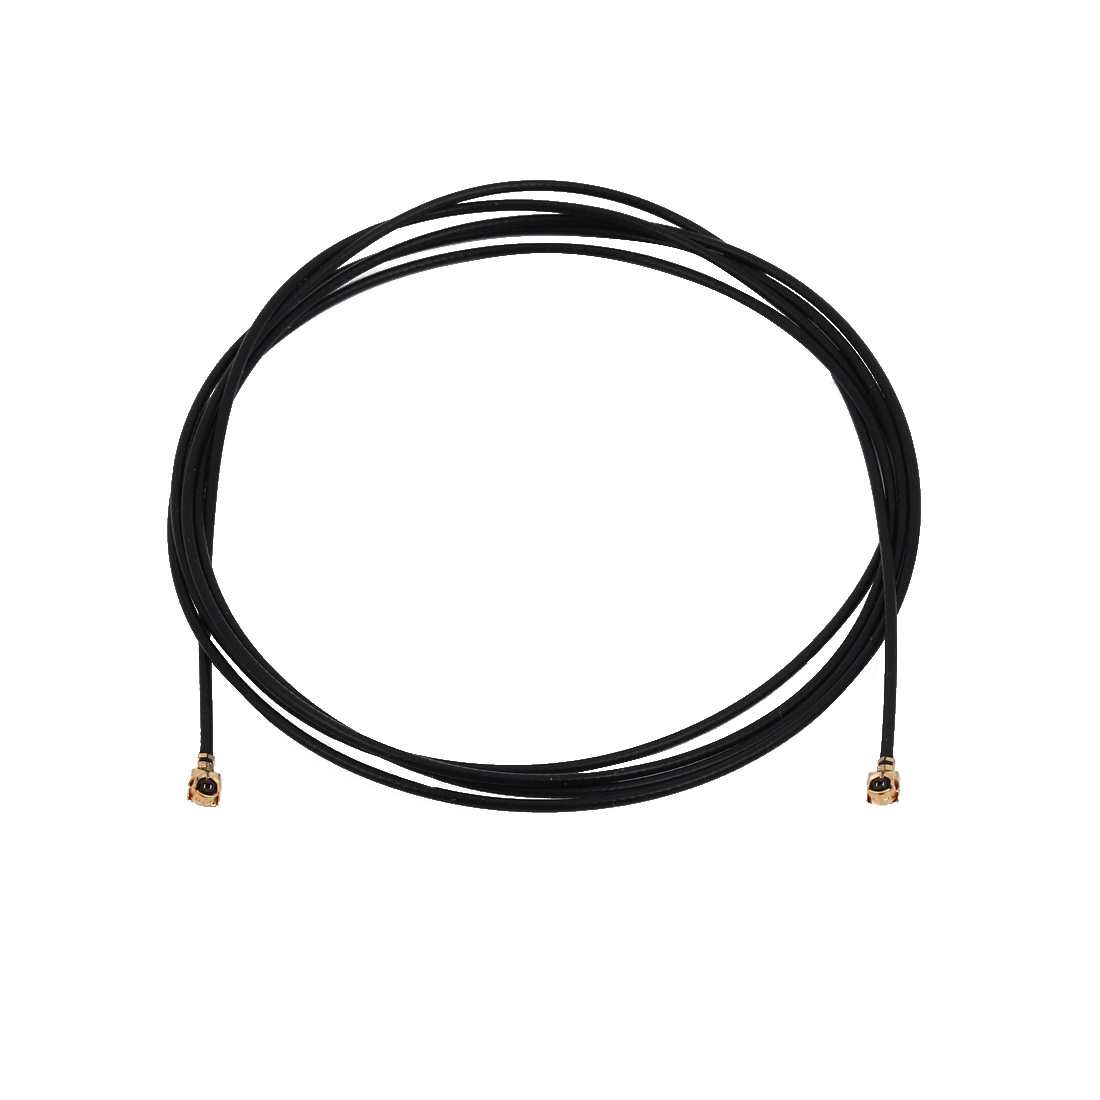 RF1.13 IPEX 1.0 to IPEX 1.0 Antenna WiFi Pigtail Cable 100cm Length for Router